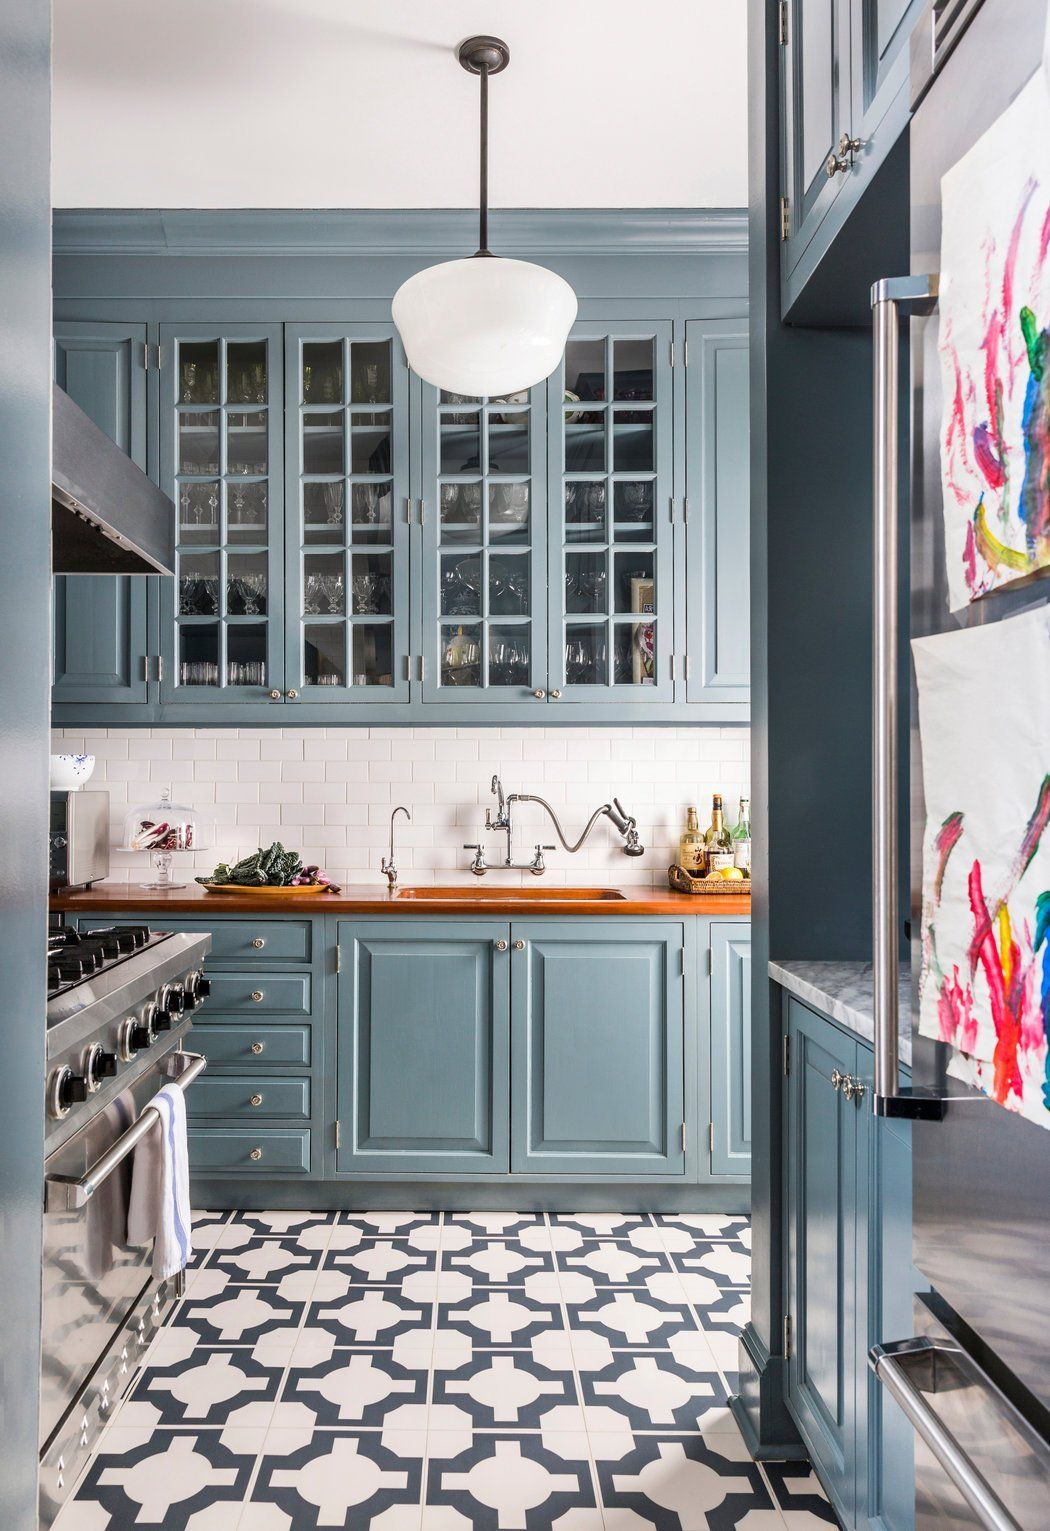 Seven Ways to Save on Your Kitchen Renovation | Kitchens, Kitchen ...